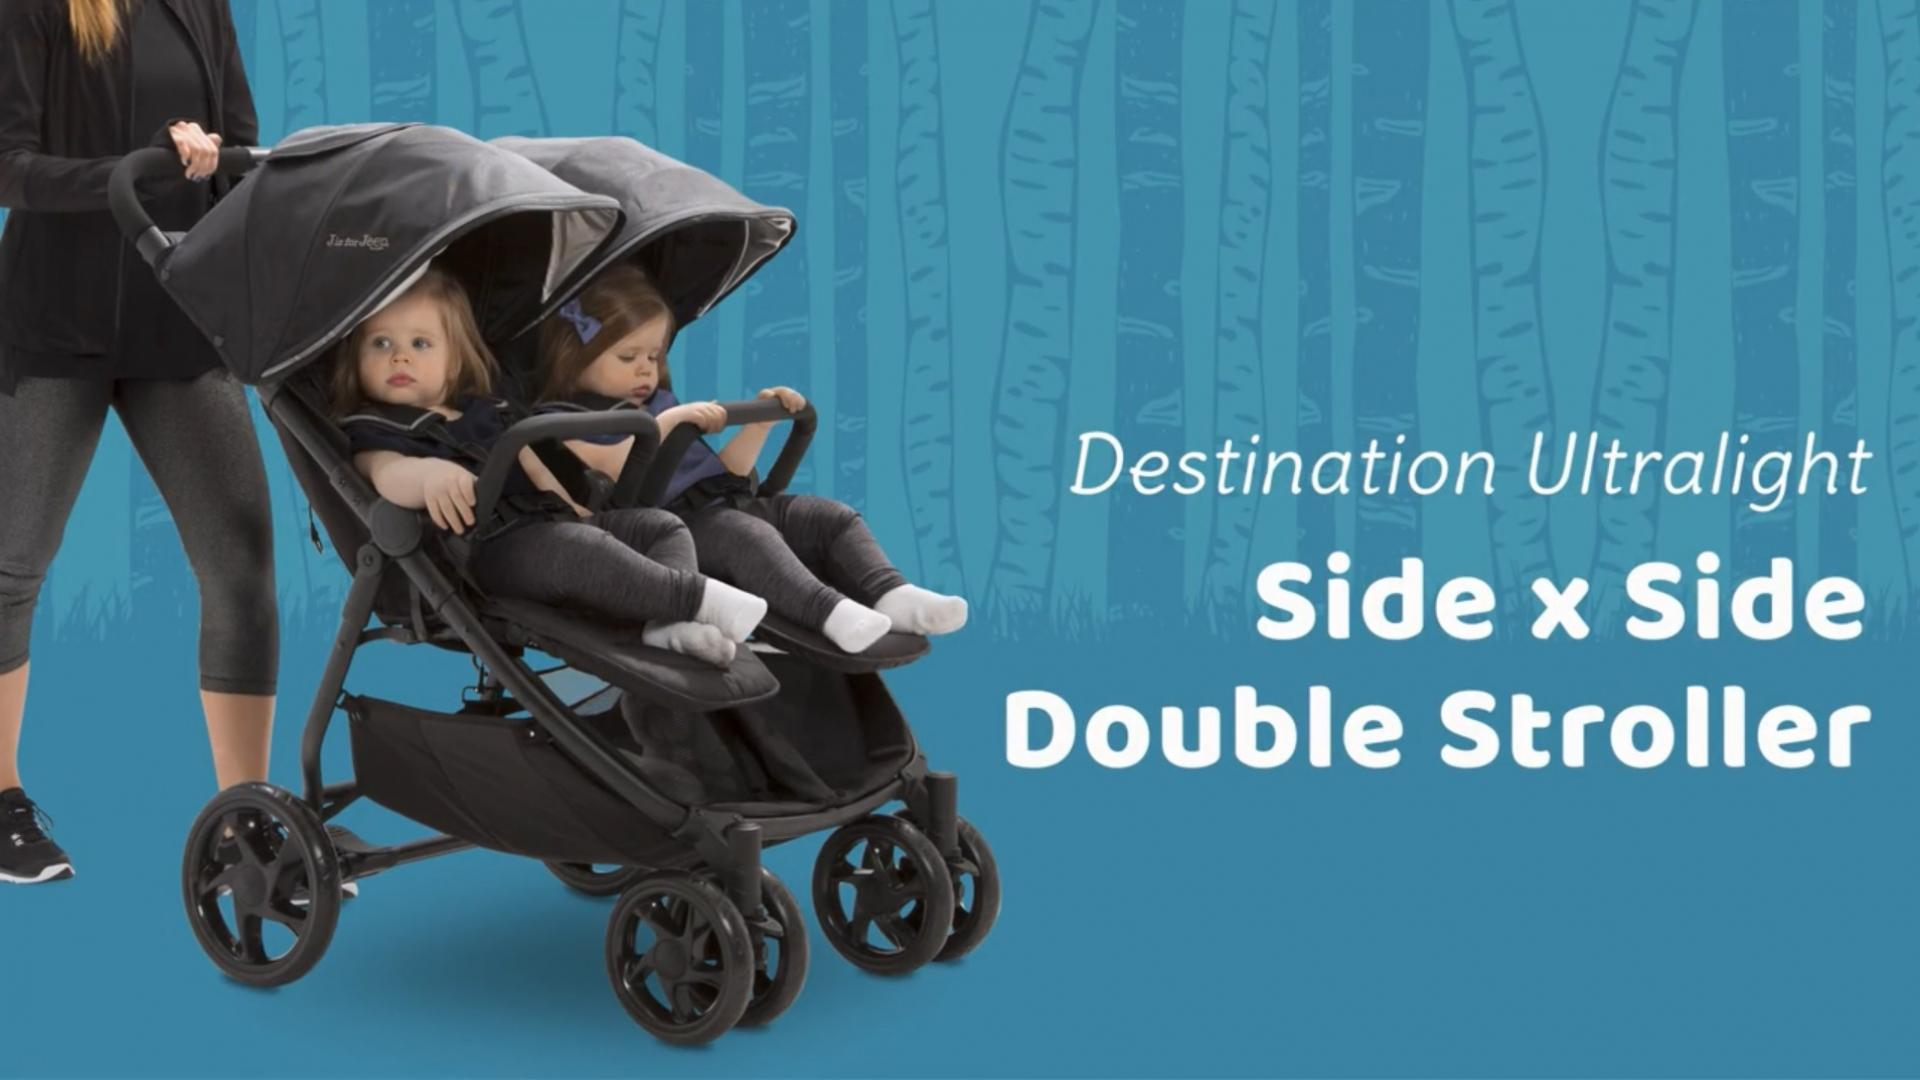 J is for Jeep Destination Ultralight Double Stroller in Midnight